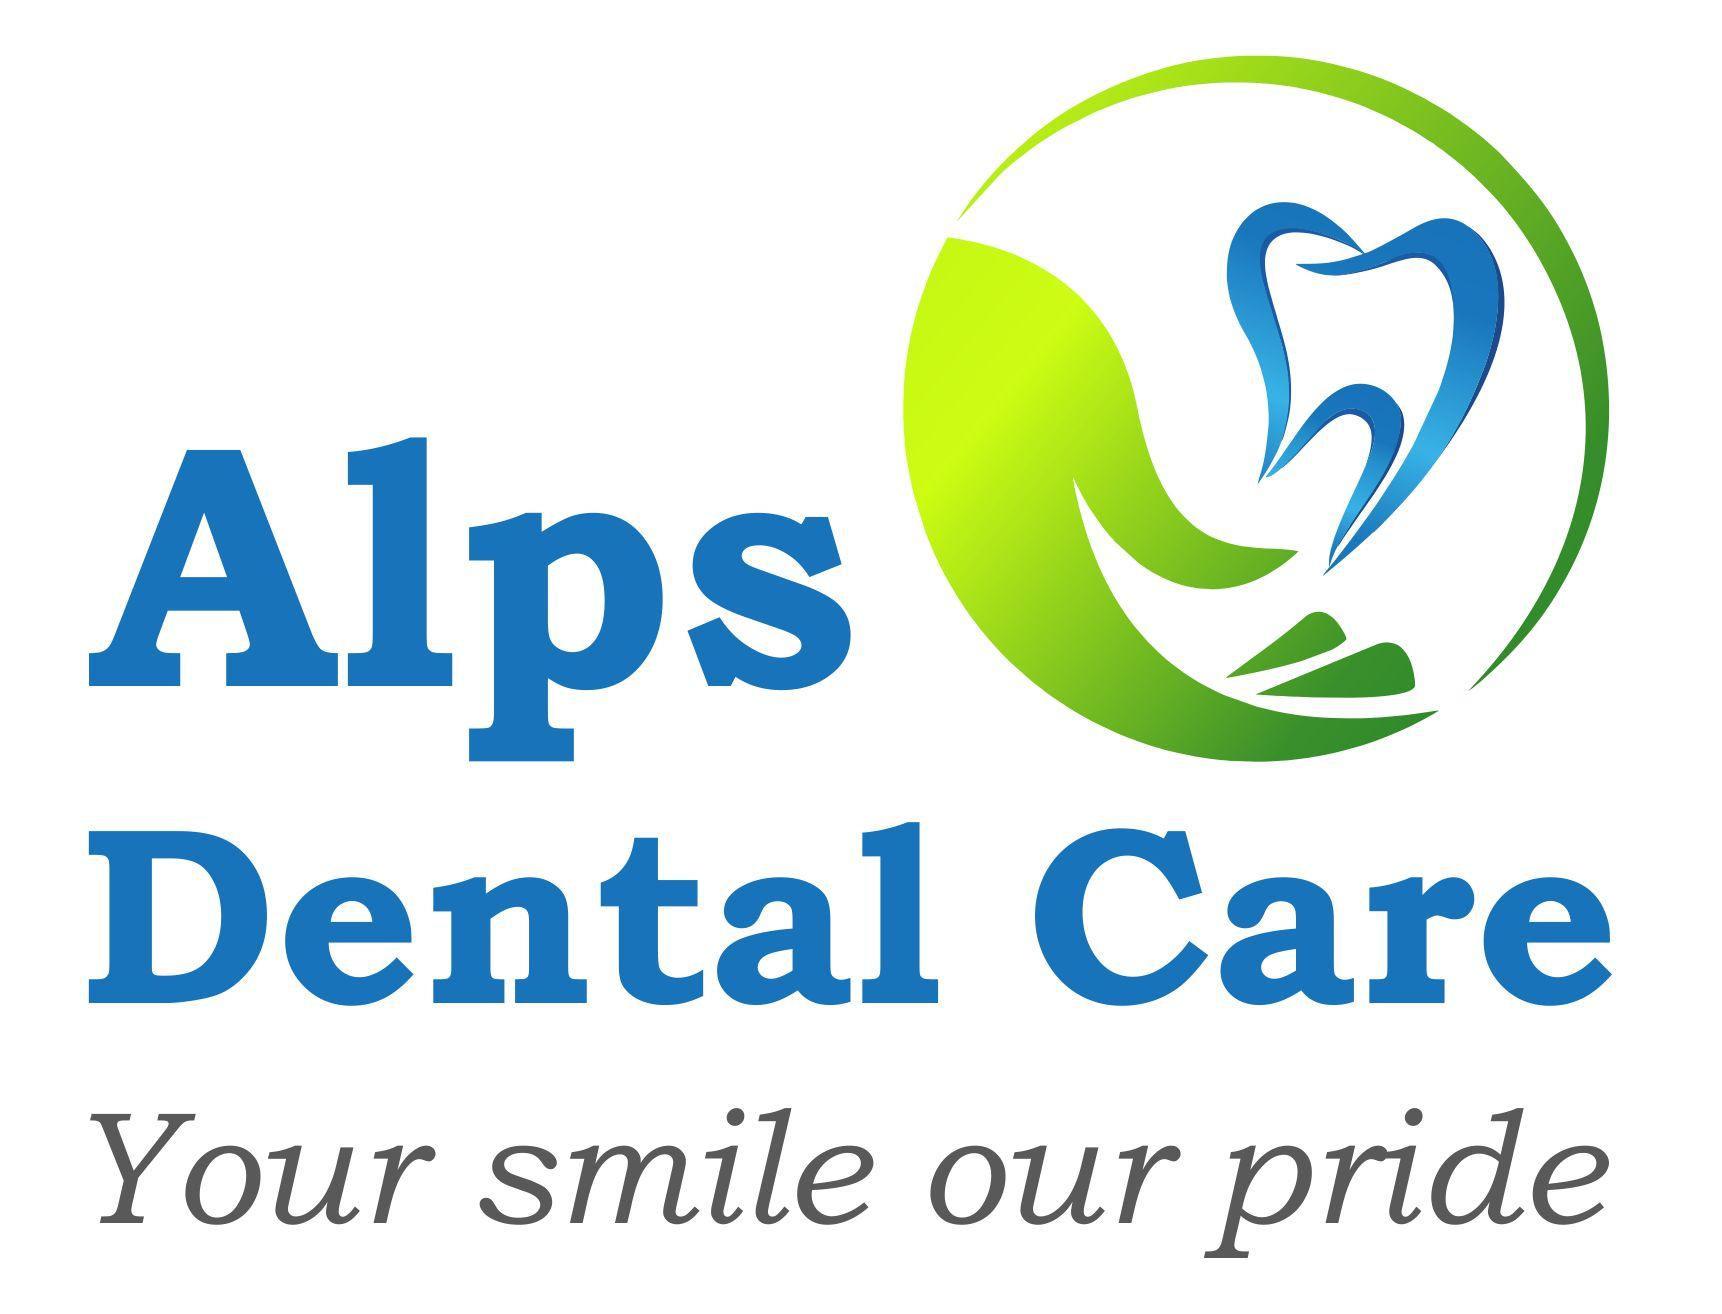 Alps Dental Care